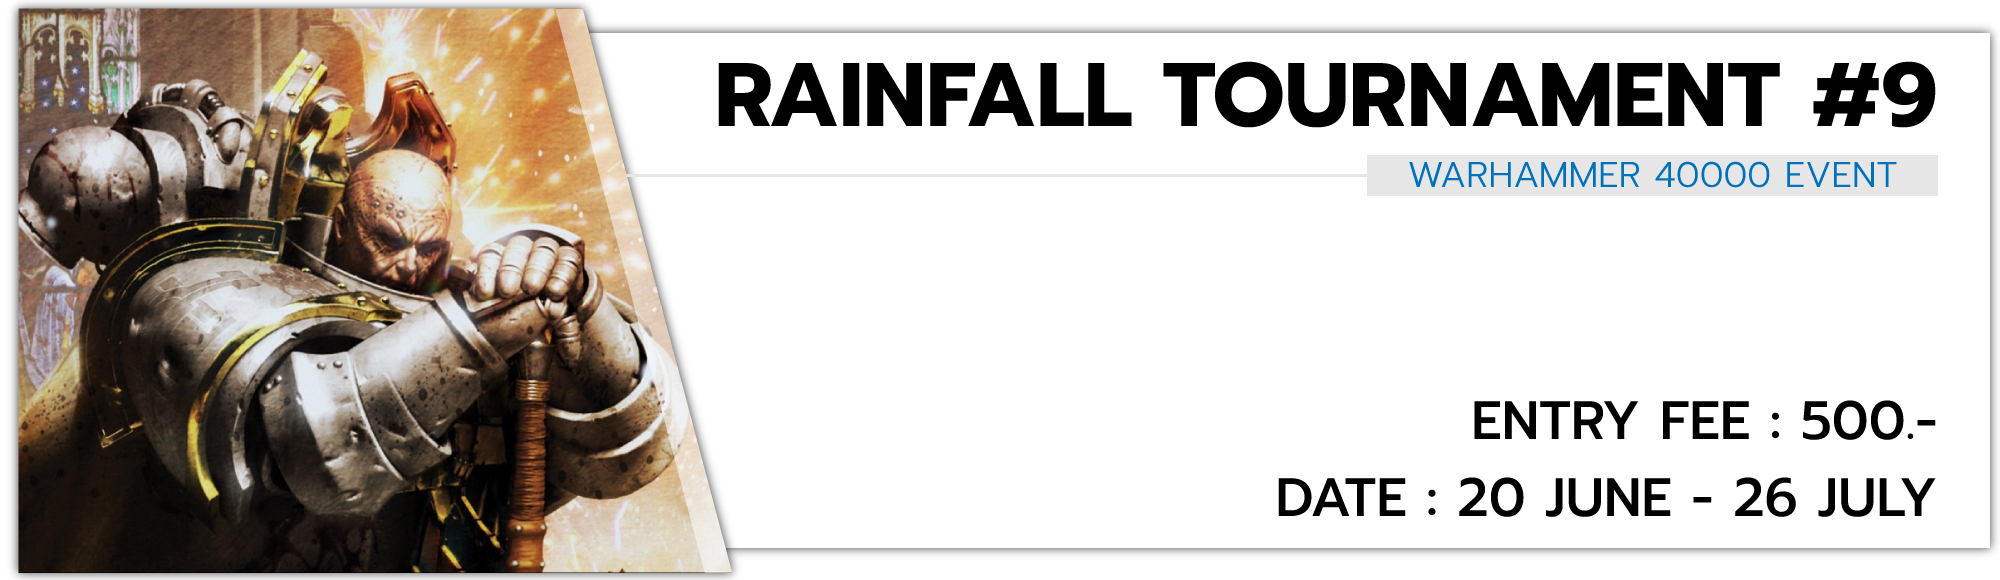 Warhammer 40,000: Rainfall Tournamet#9